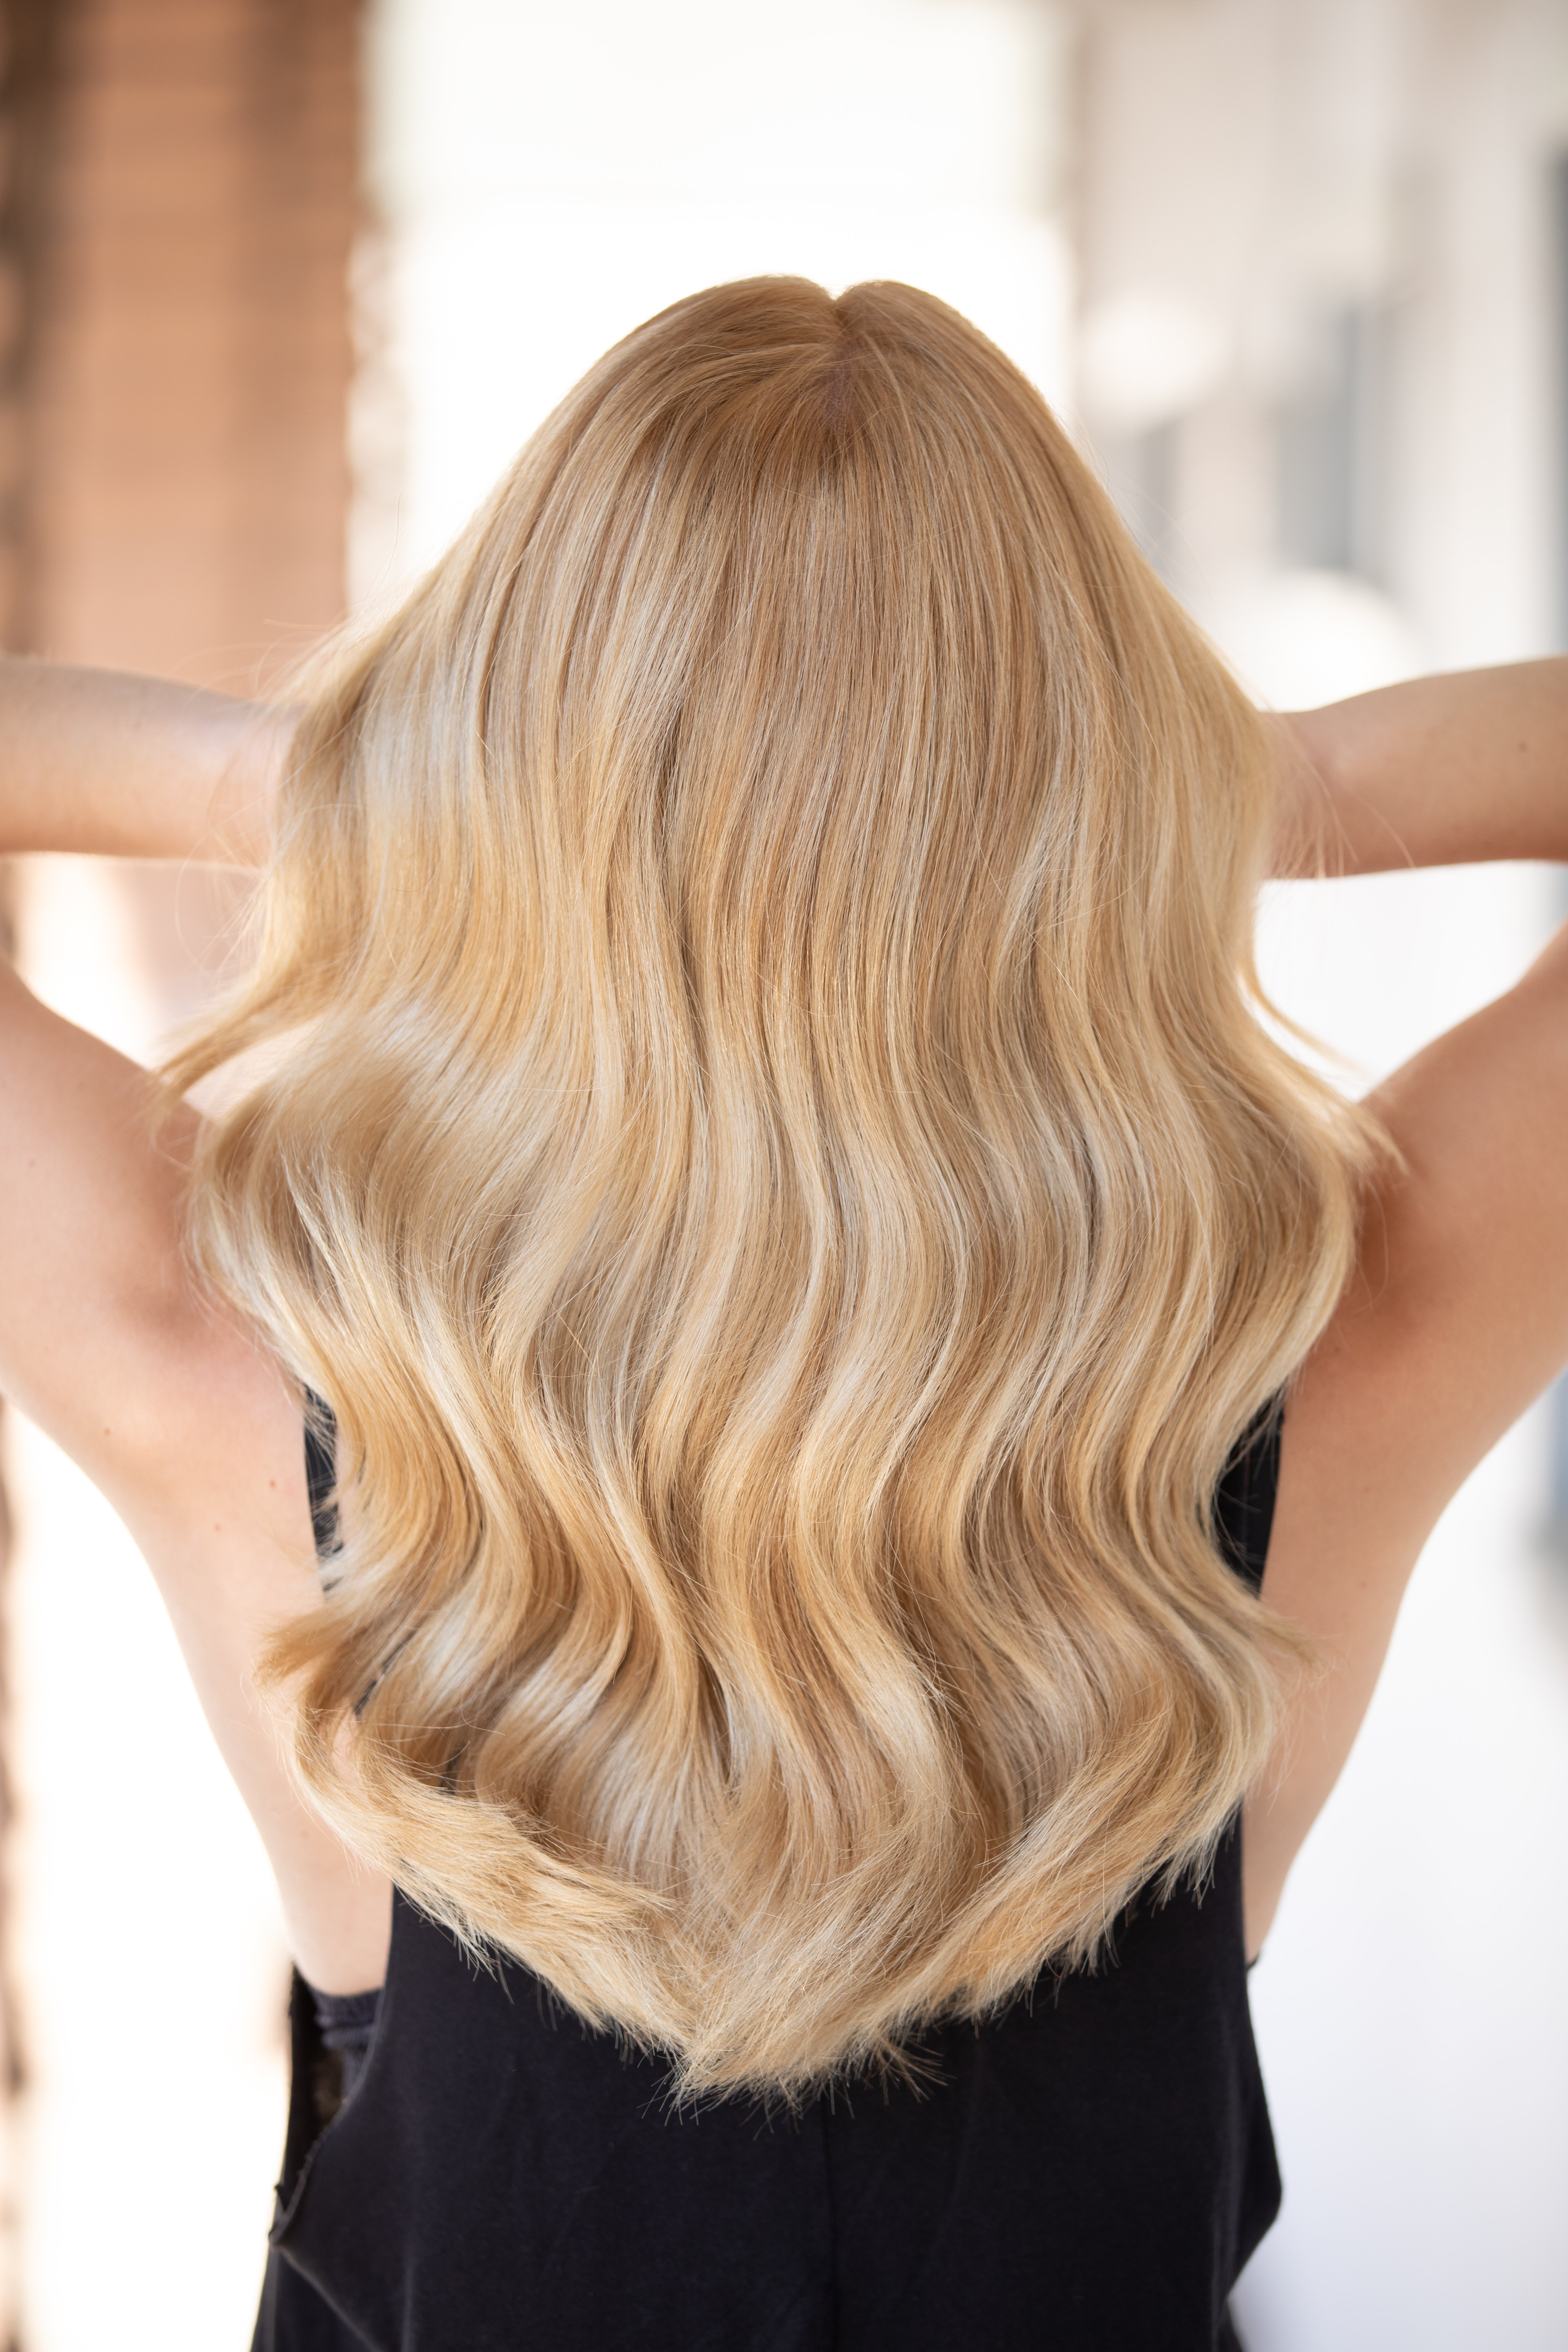 <p><strong>Dazzle your clients with this nuanced, &ldquo;expensive-looking&rdquo; blonde shade. Hair by Kenra Professional National Artistic Manager Oliver Shortall @oliver_shortall.</strong></p>